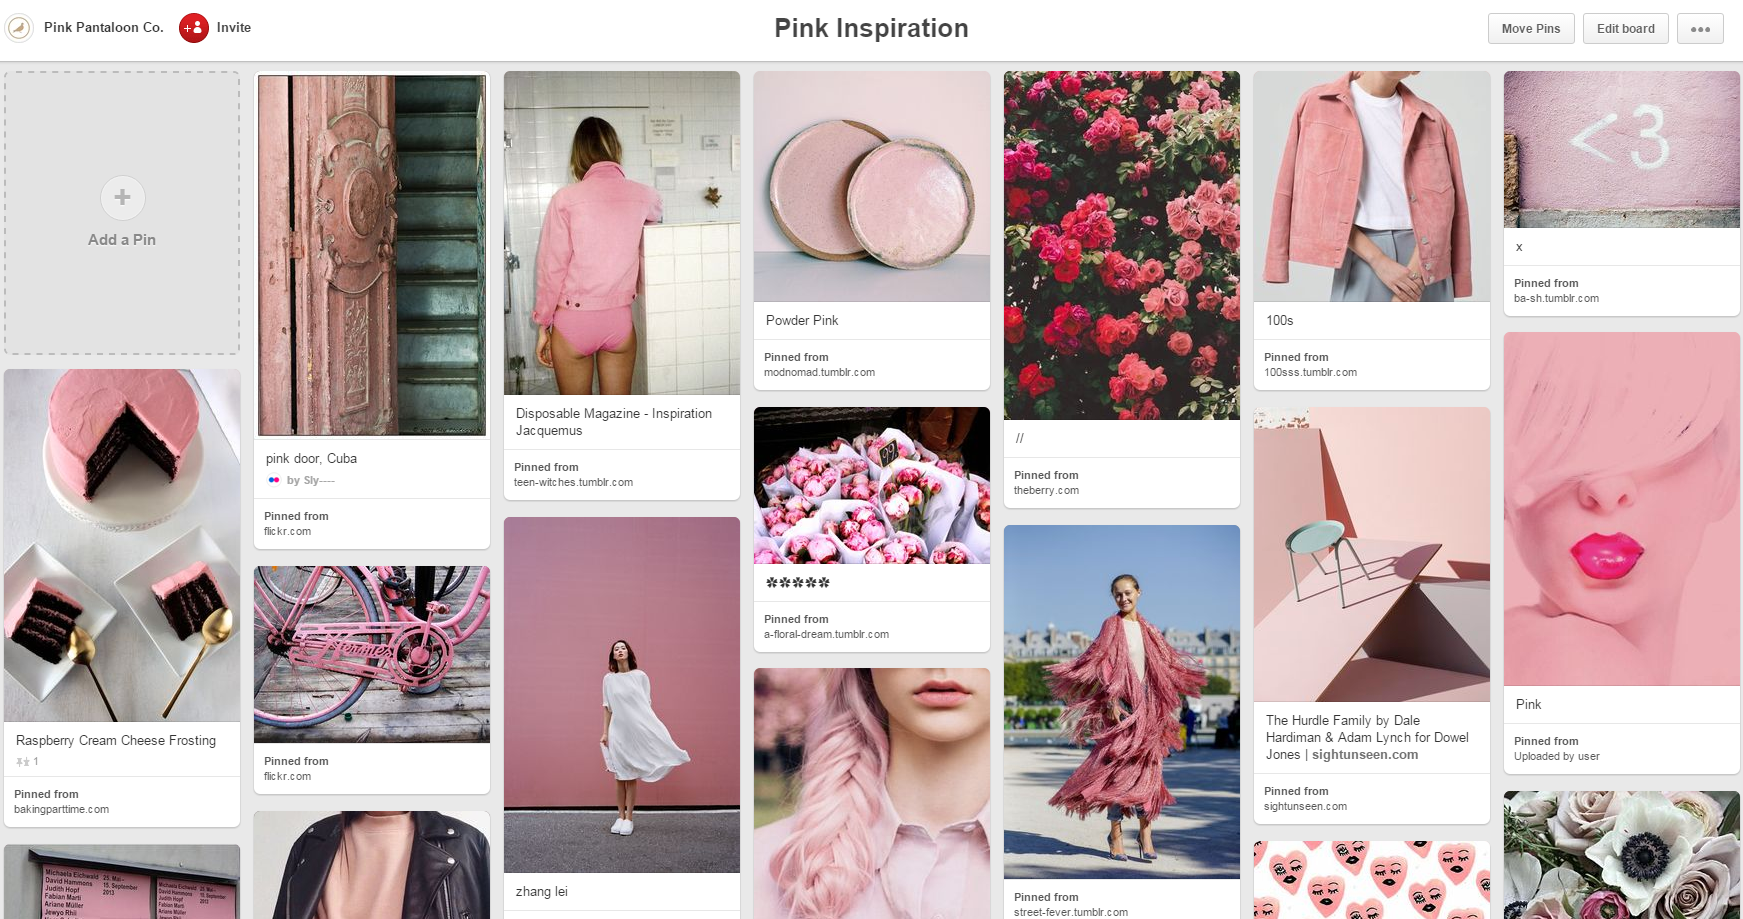 Our Pink Inspiration Pinterest board...